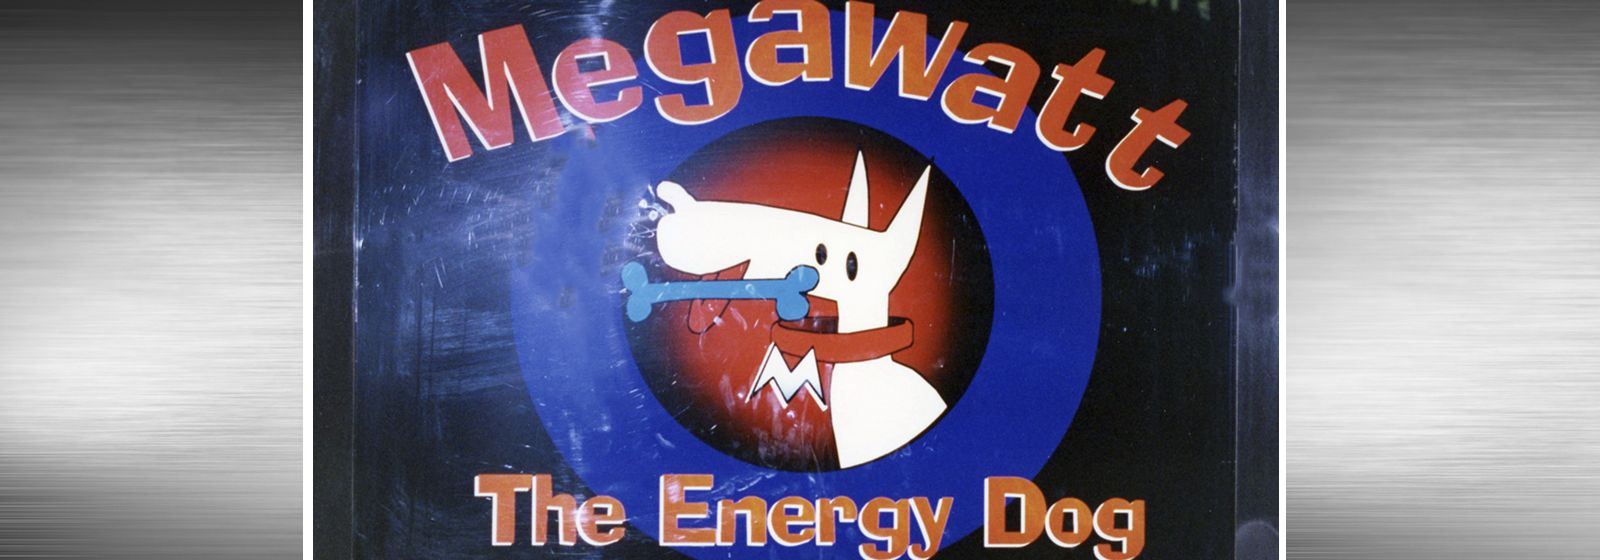 Retro photos: It's Megawatt, the energy dog!